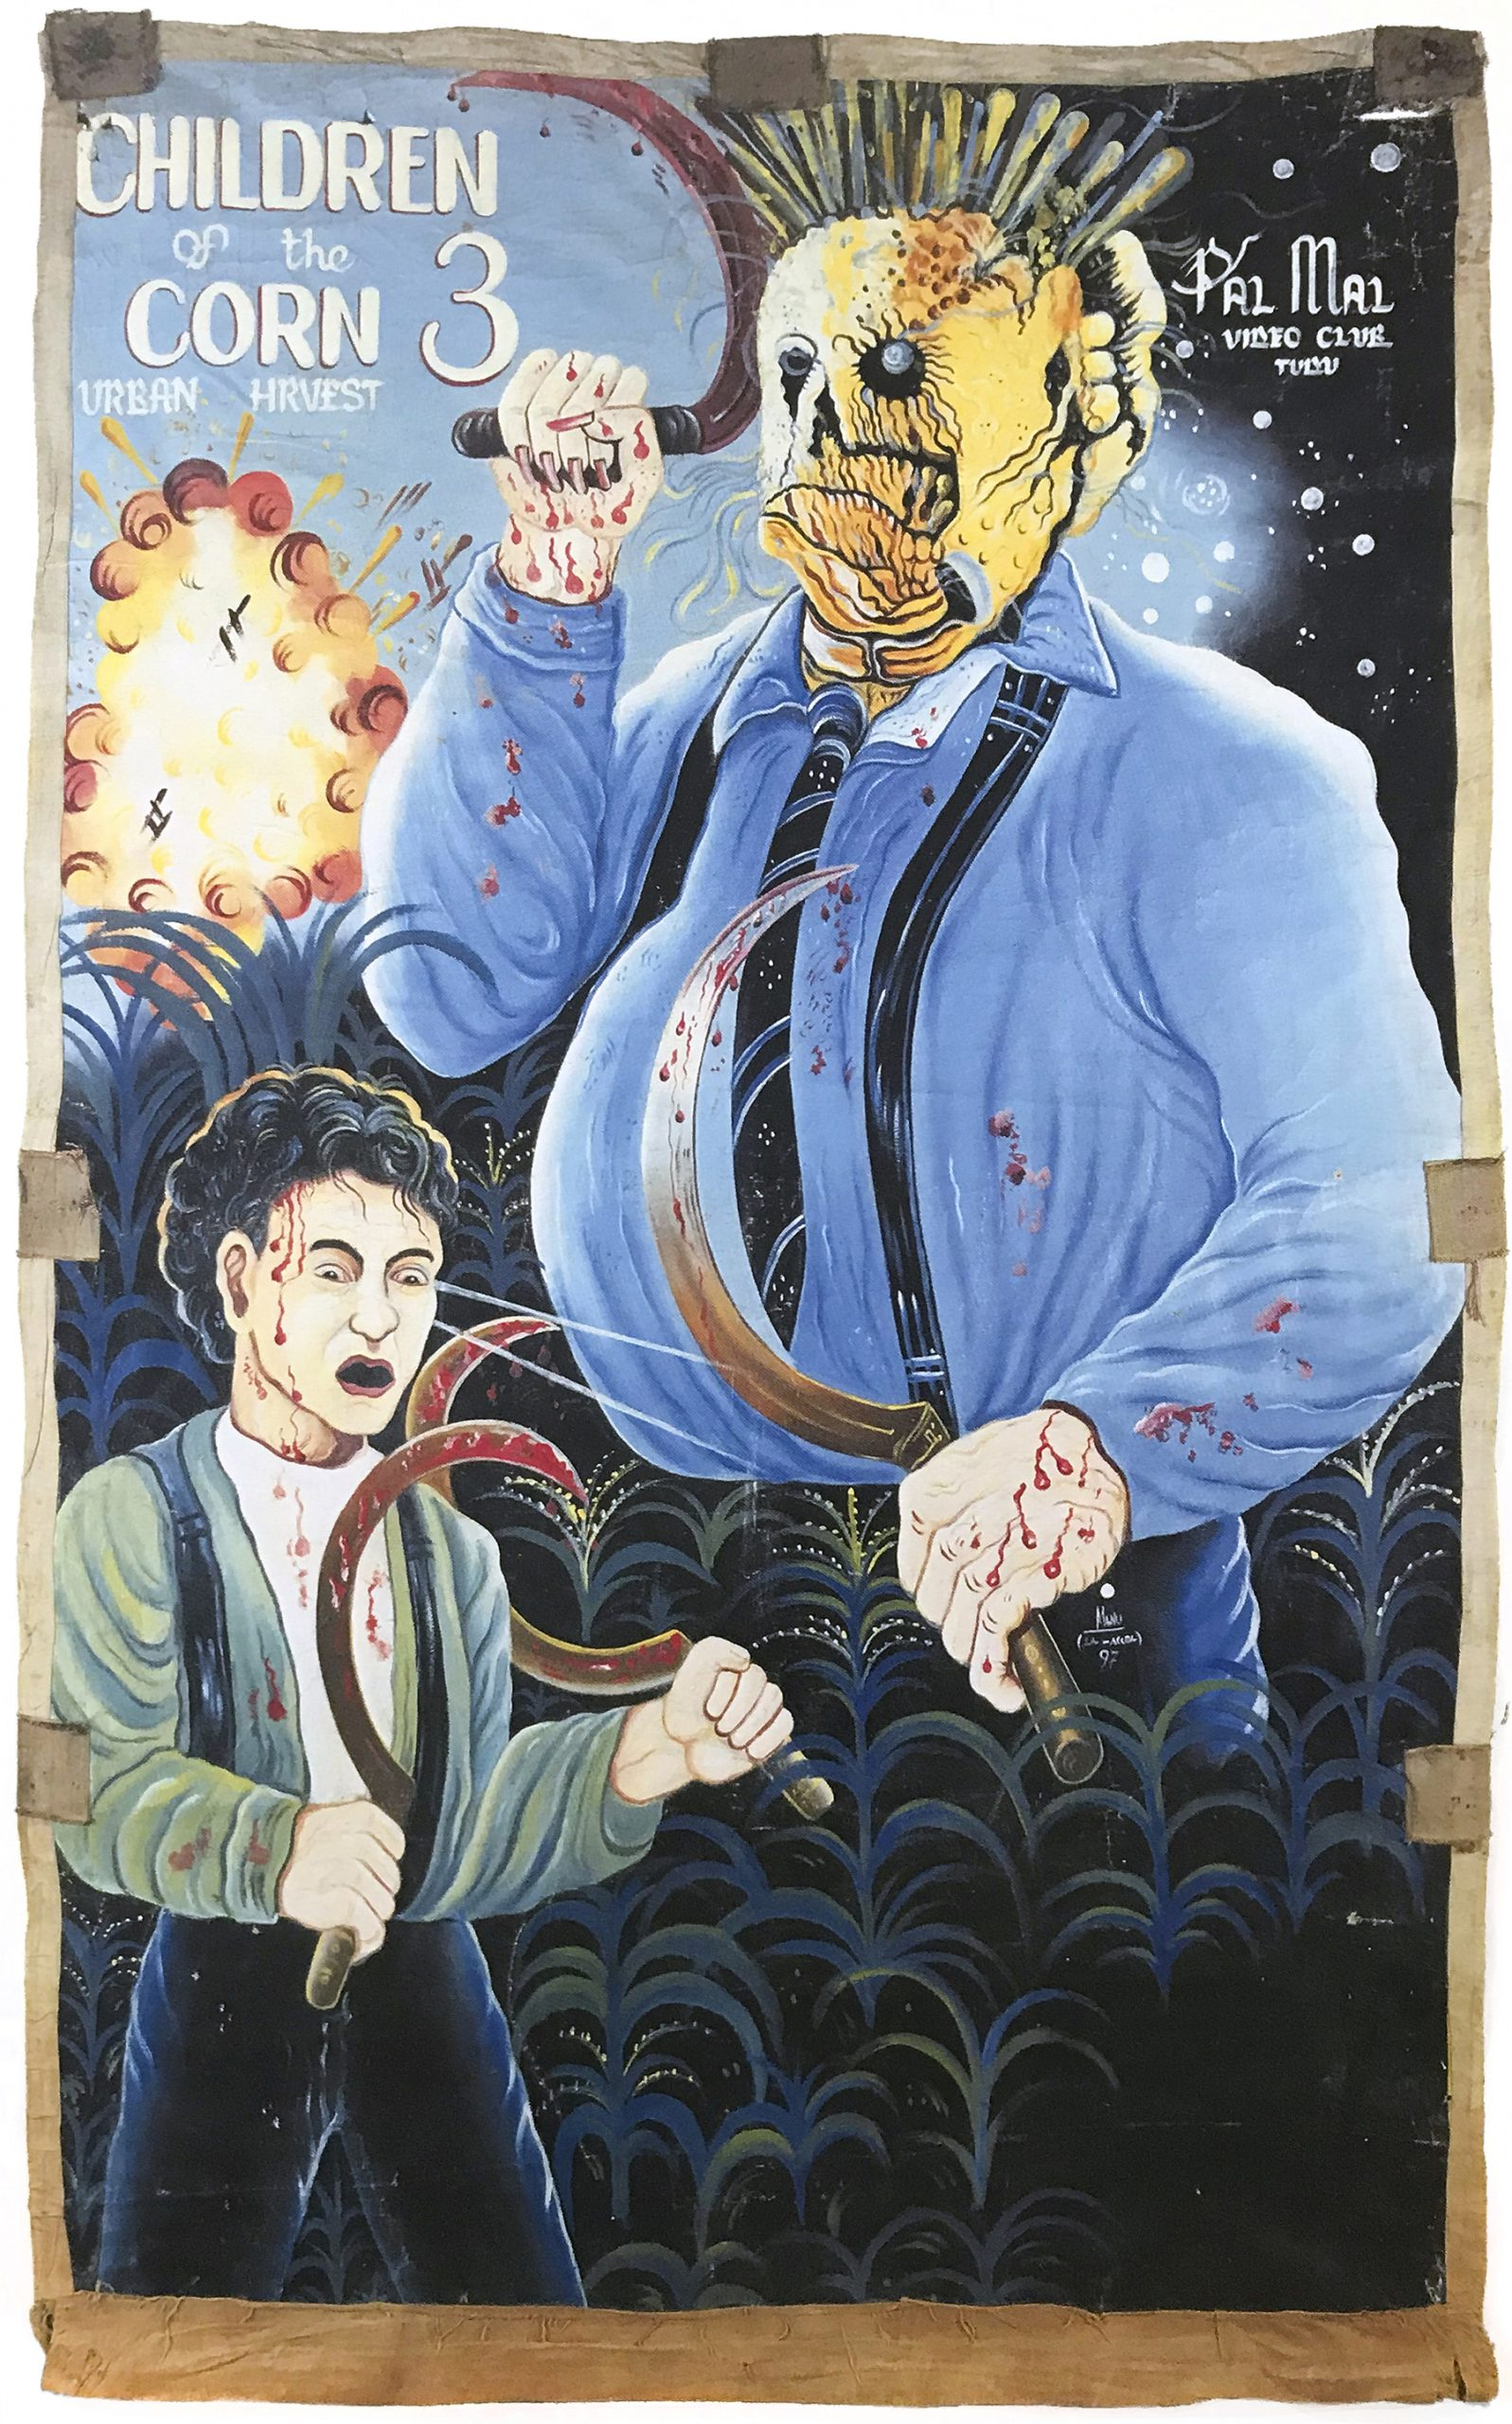 hand-painted poster of a man wearing a mask made of corn and a young boy holding bloody circular knives